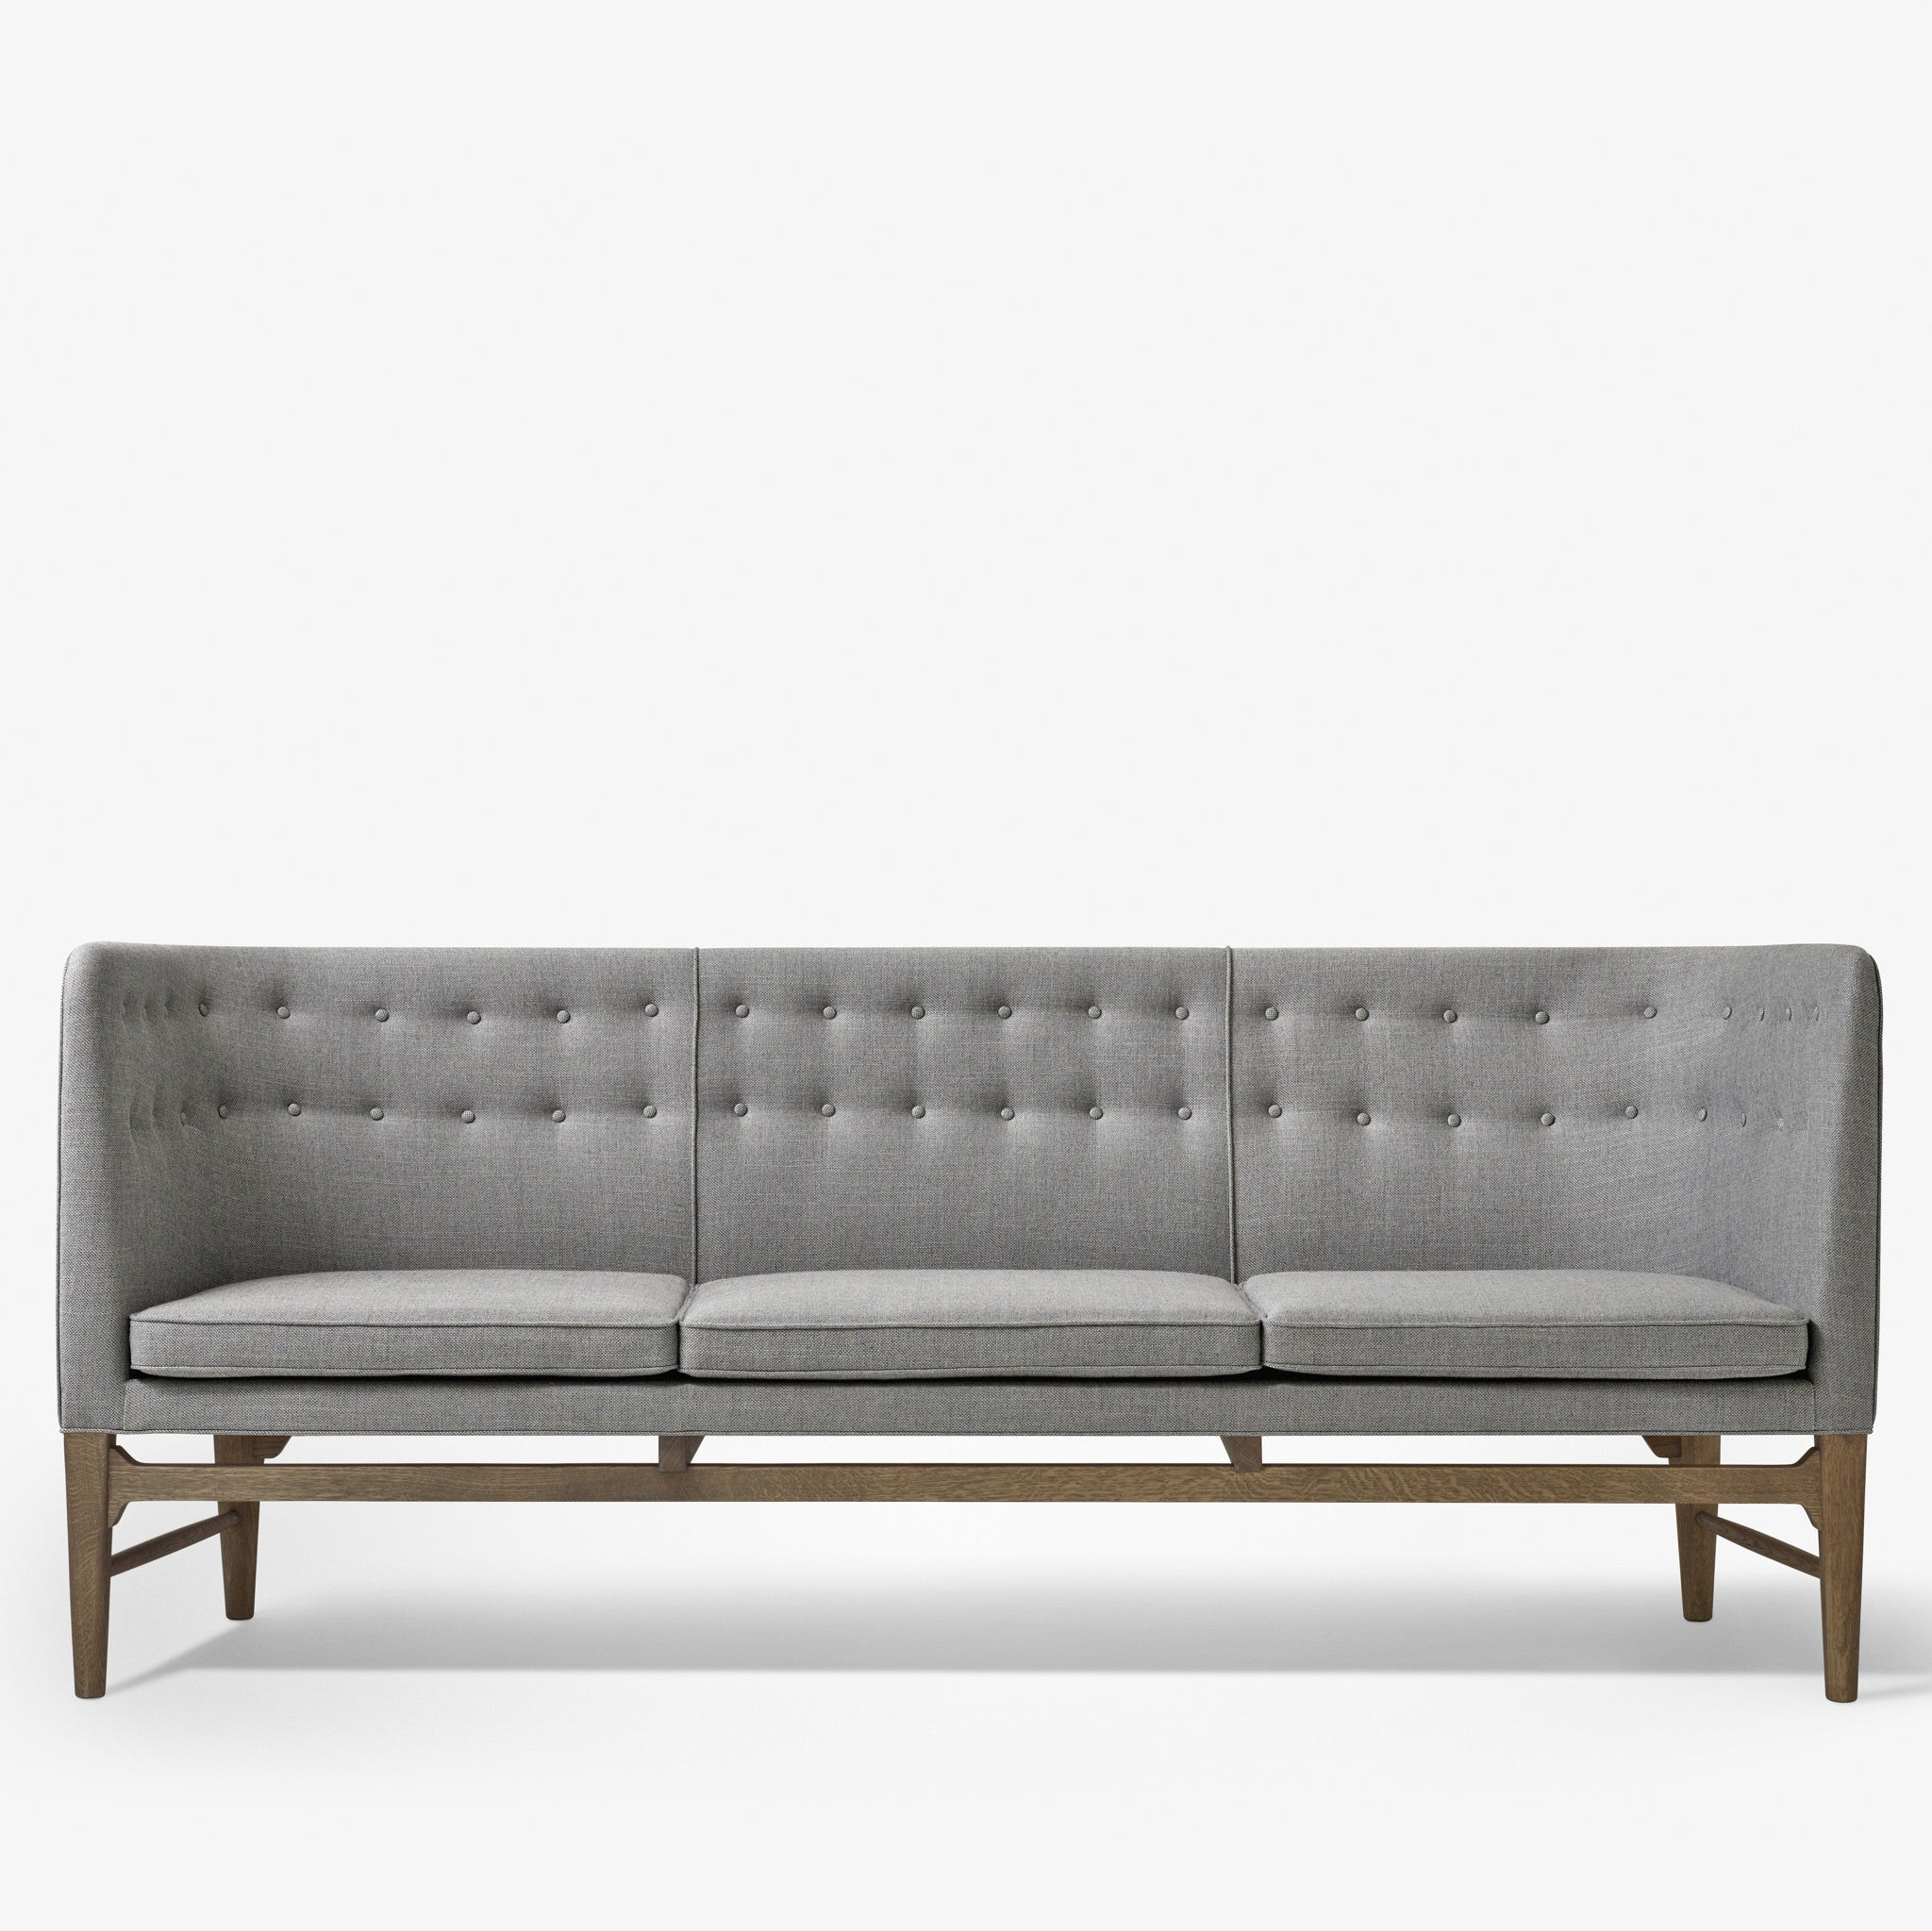 Mayor AJ5 Sofa by &Tradition